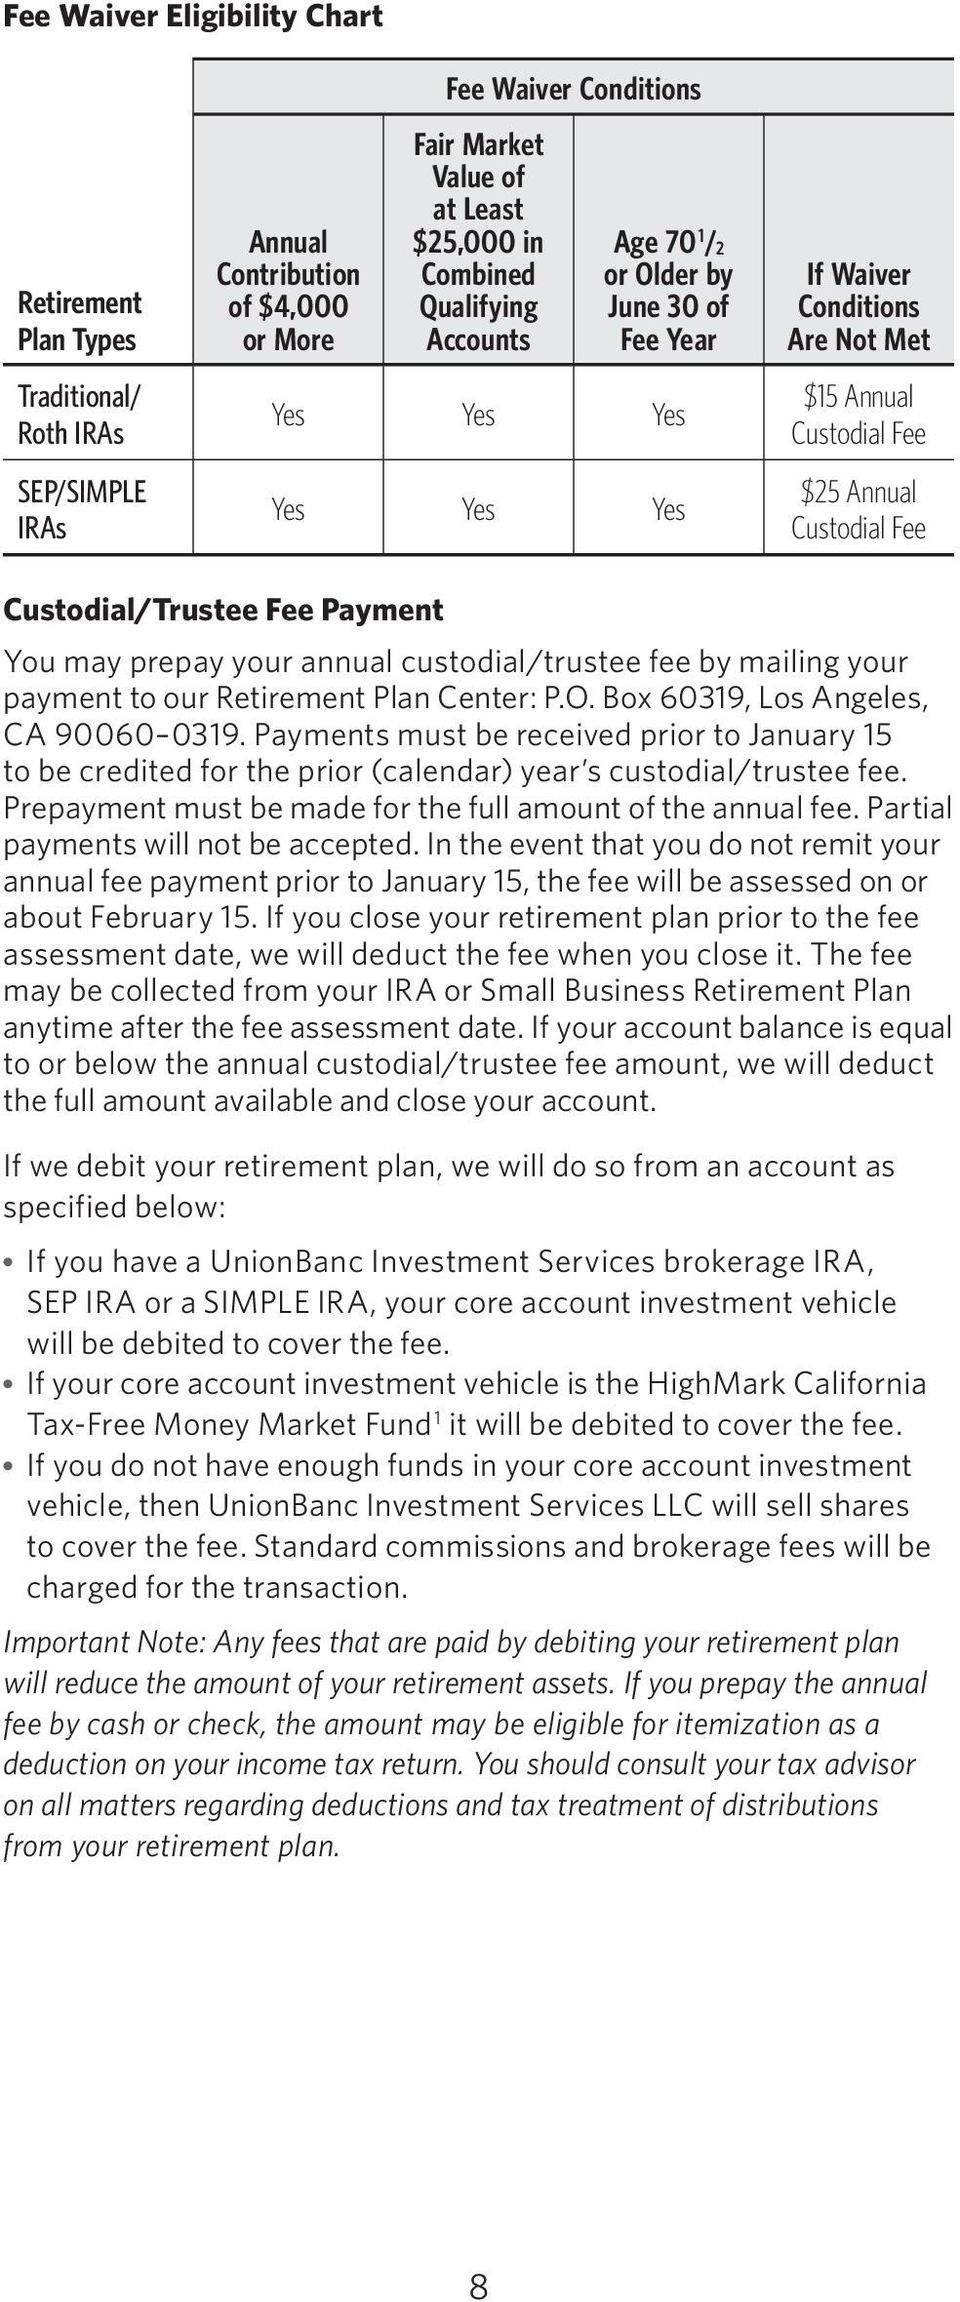 Payment You may prepay your annual custodial/trustee fee by mailing your payment to our Retirement Plan Center: P.O. Box 60319, Los Angeles, CA 90060 0319.